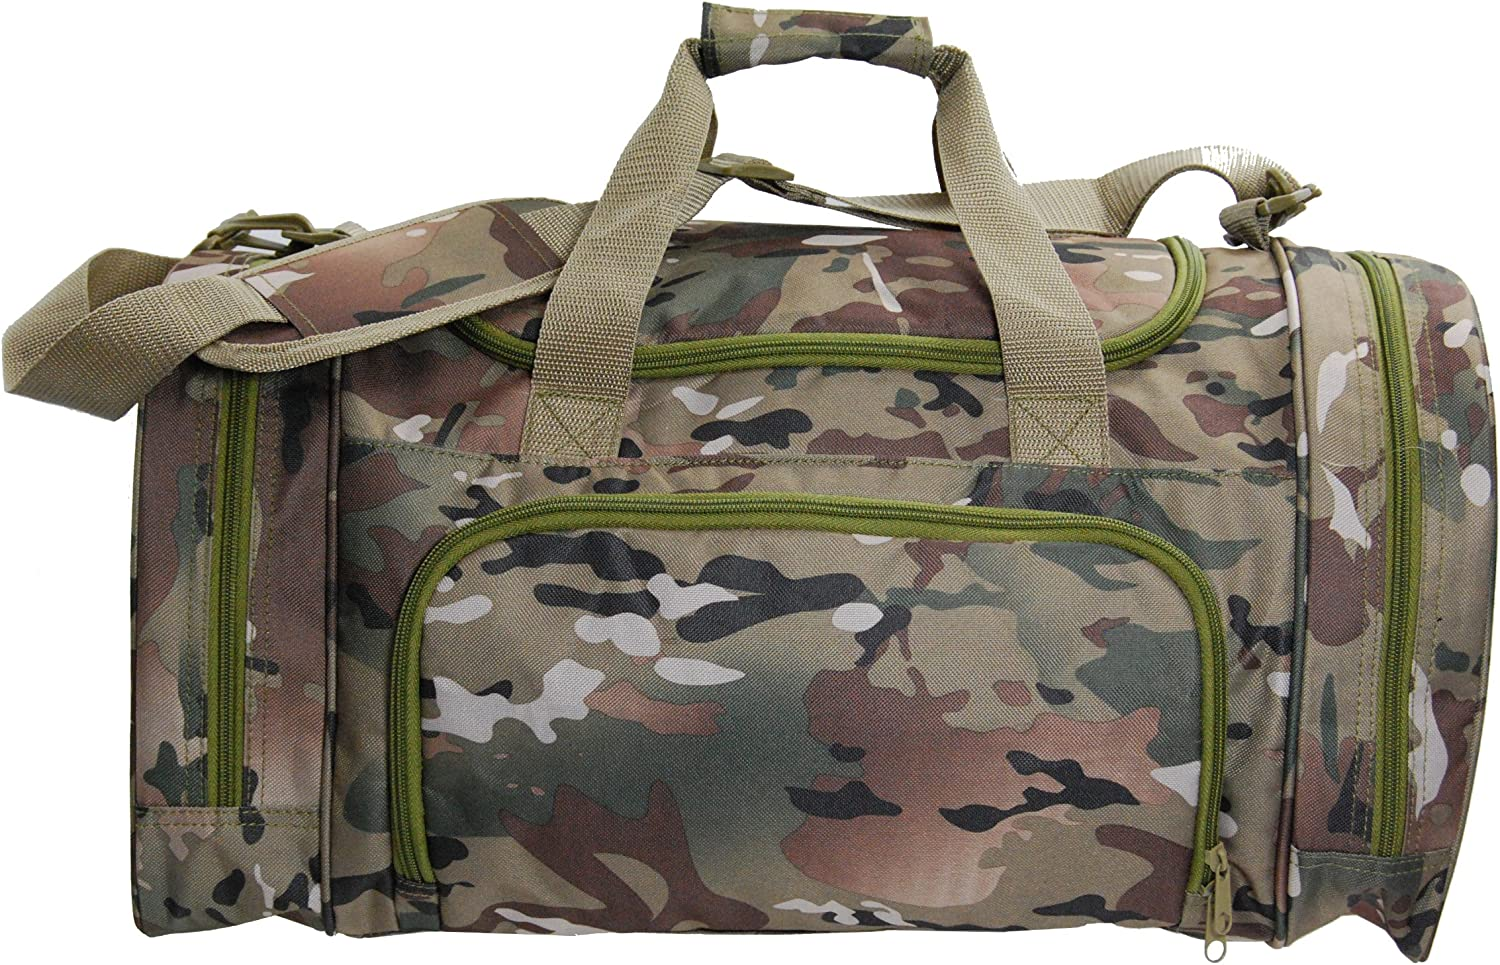 Elite Team Digital Camo Duffel Travel Overnight Gym Bag Pocket for Shoes Wet Items Large